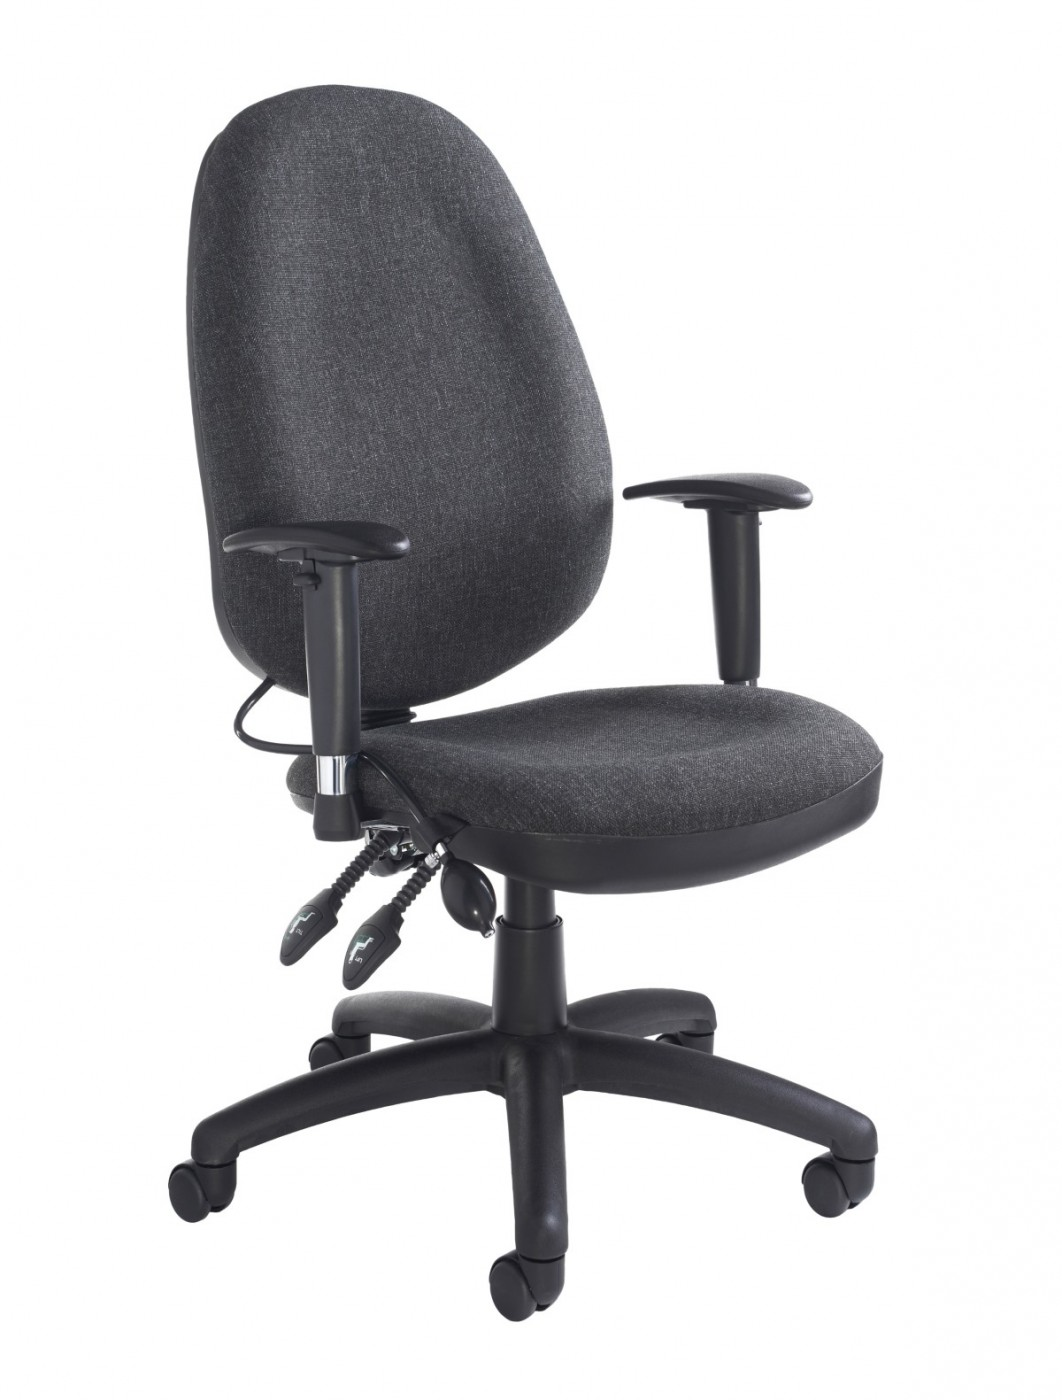 Cloth Office Chairs Office Chairs Sofia Fabric Office Chair Sof300t1 121